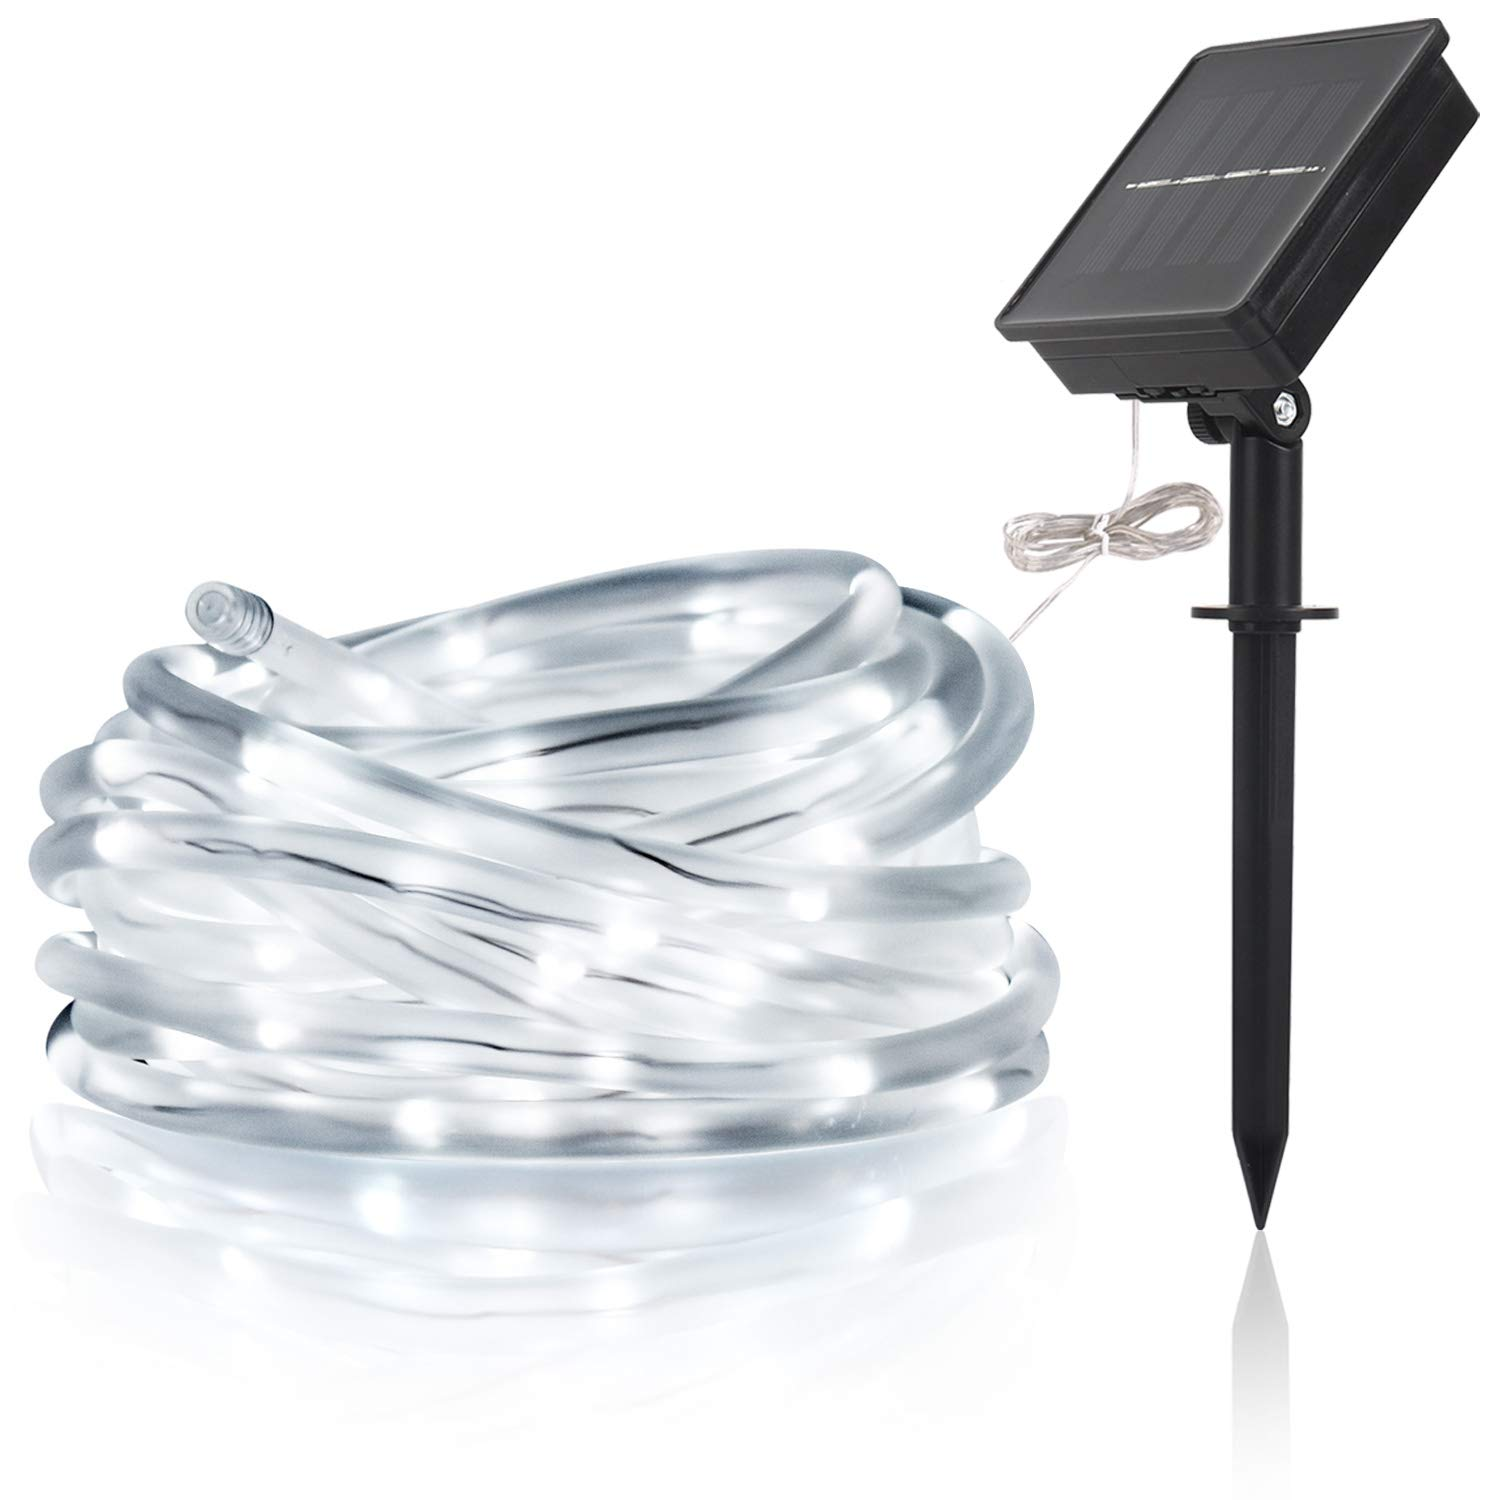 LTE Solar LED String Light Solar Powered Rope light Waterproof IP55 Cool White 6000K 33ft 100 LEDs, Decoration Light for Gardens, Patios, Homes, Parties